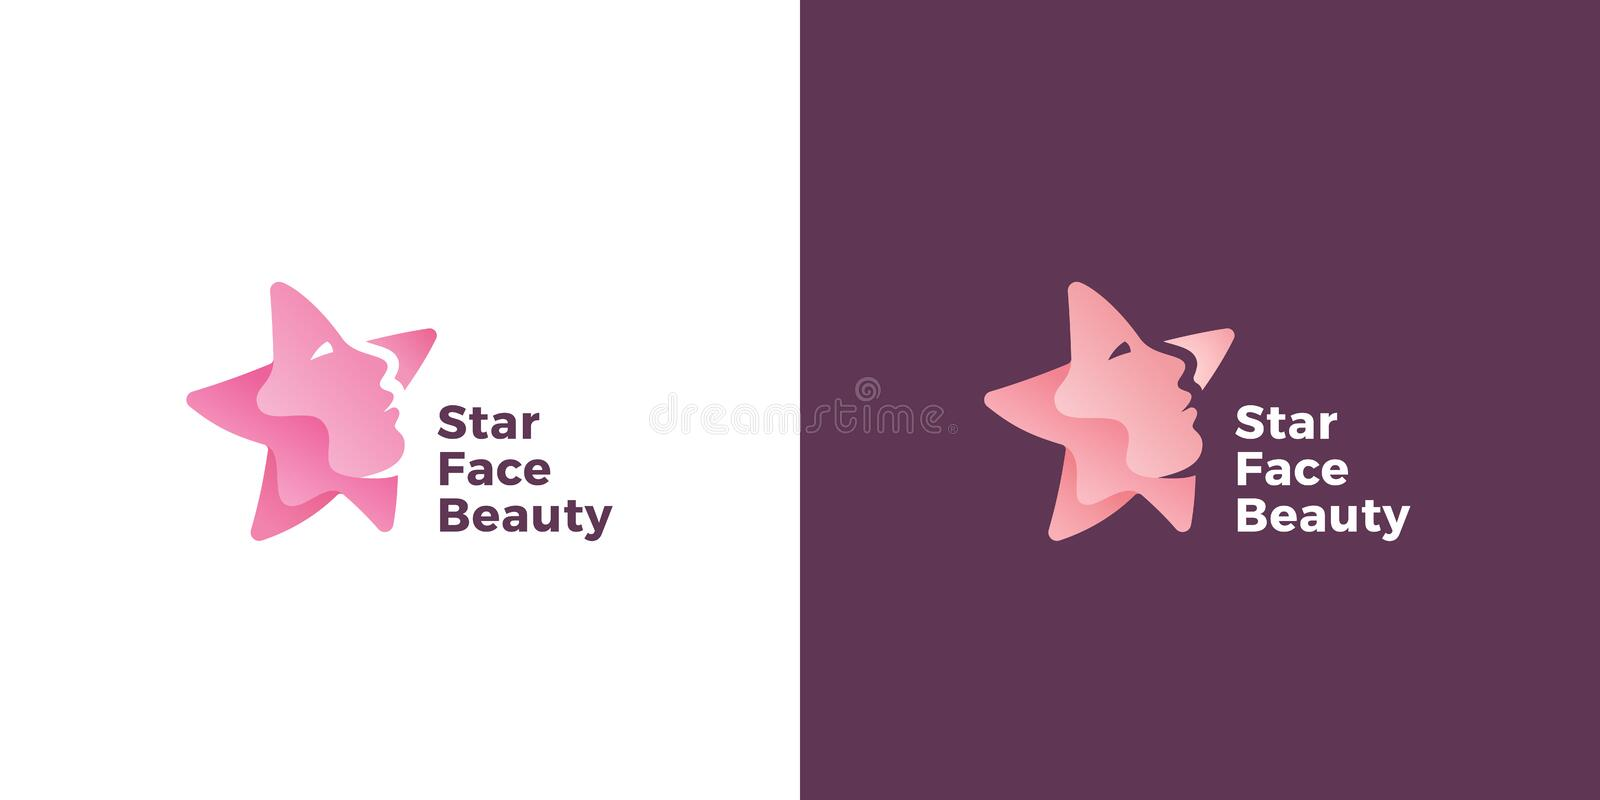 Star Face Abstract Vector Sign, Emblem or Logo Template. Star Silhouette as a Beautiful Woman Face. Flat Style Symbol vector illustration